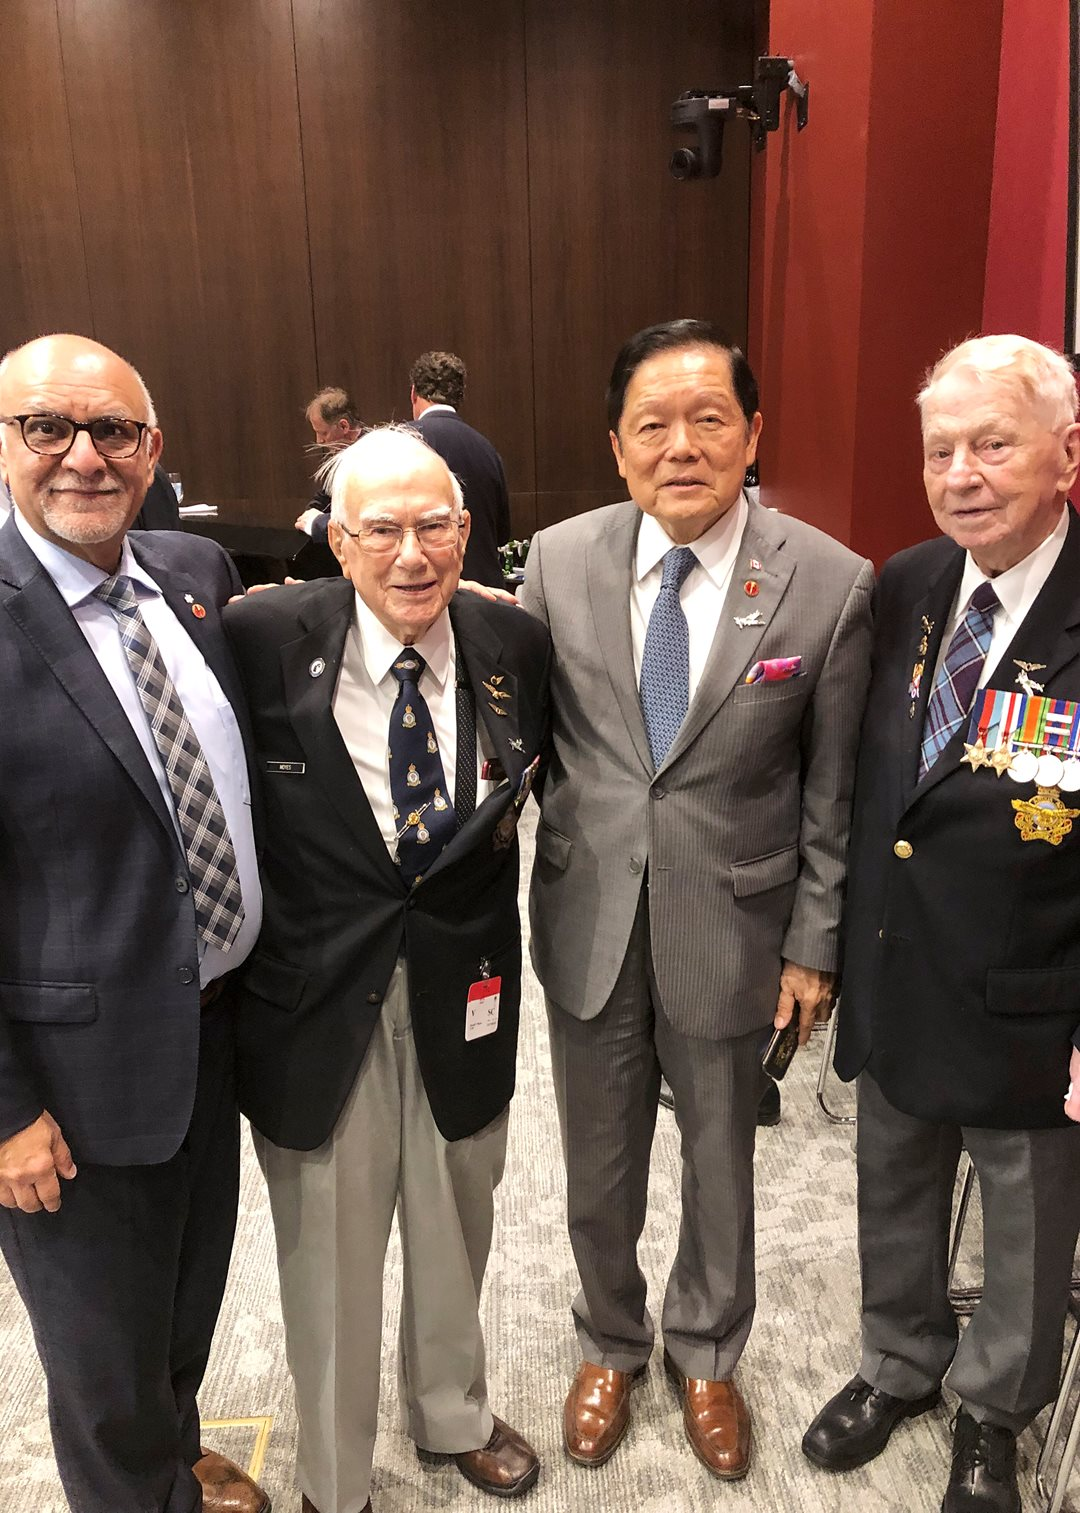 Tuesday, June 4, 2019 — Senators Mohamed-Iqbal Ravalia (far left) and Victor Oh (second from the right) meet veterans Robert Bradley (second from the left) and Ronald Moyes (far right) during the 13th annual Air Force Day on Parliament Hill. The day is an opportunity for parliamentarians to honour the courage, bravery and service of members of the Royal Canadian Air Force (RCAF).